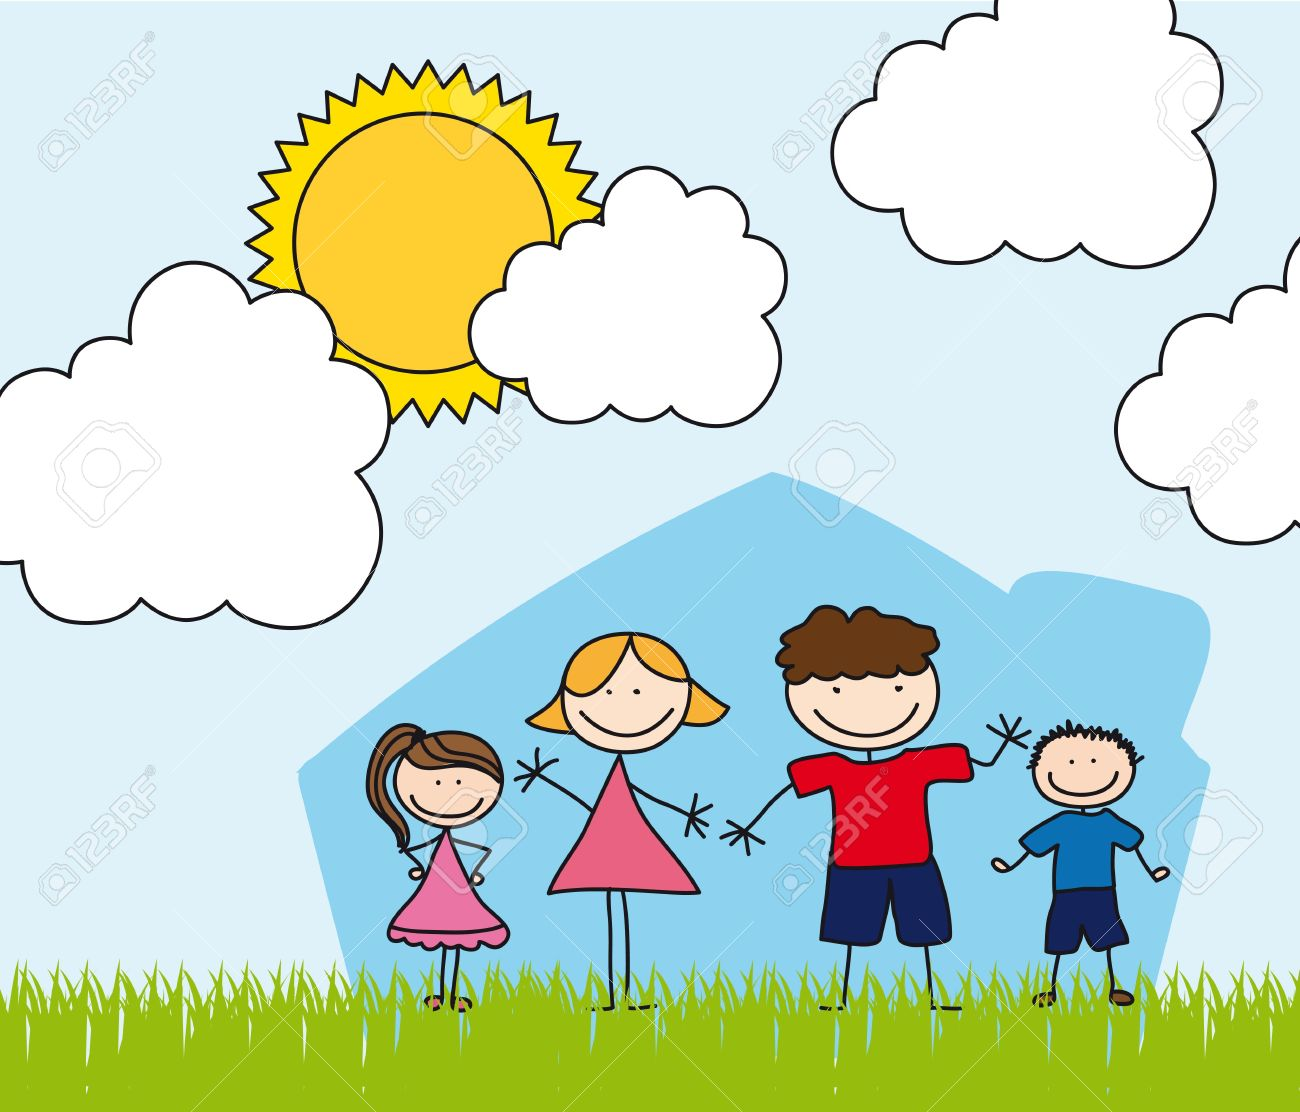 happy family over house drawing landscape royalty free cliparts